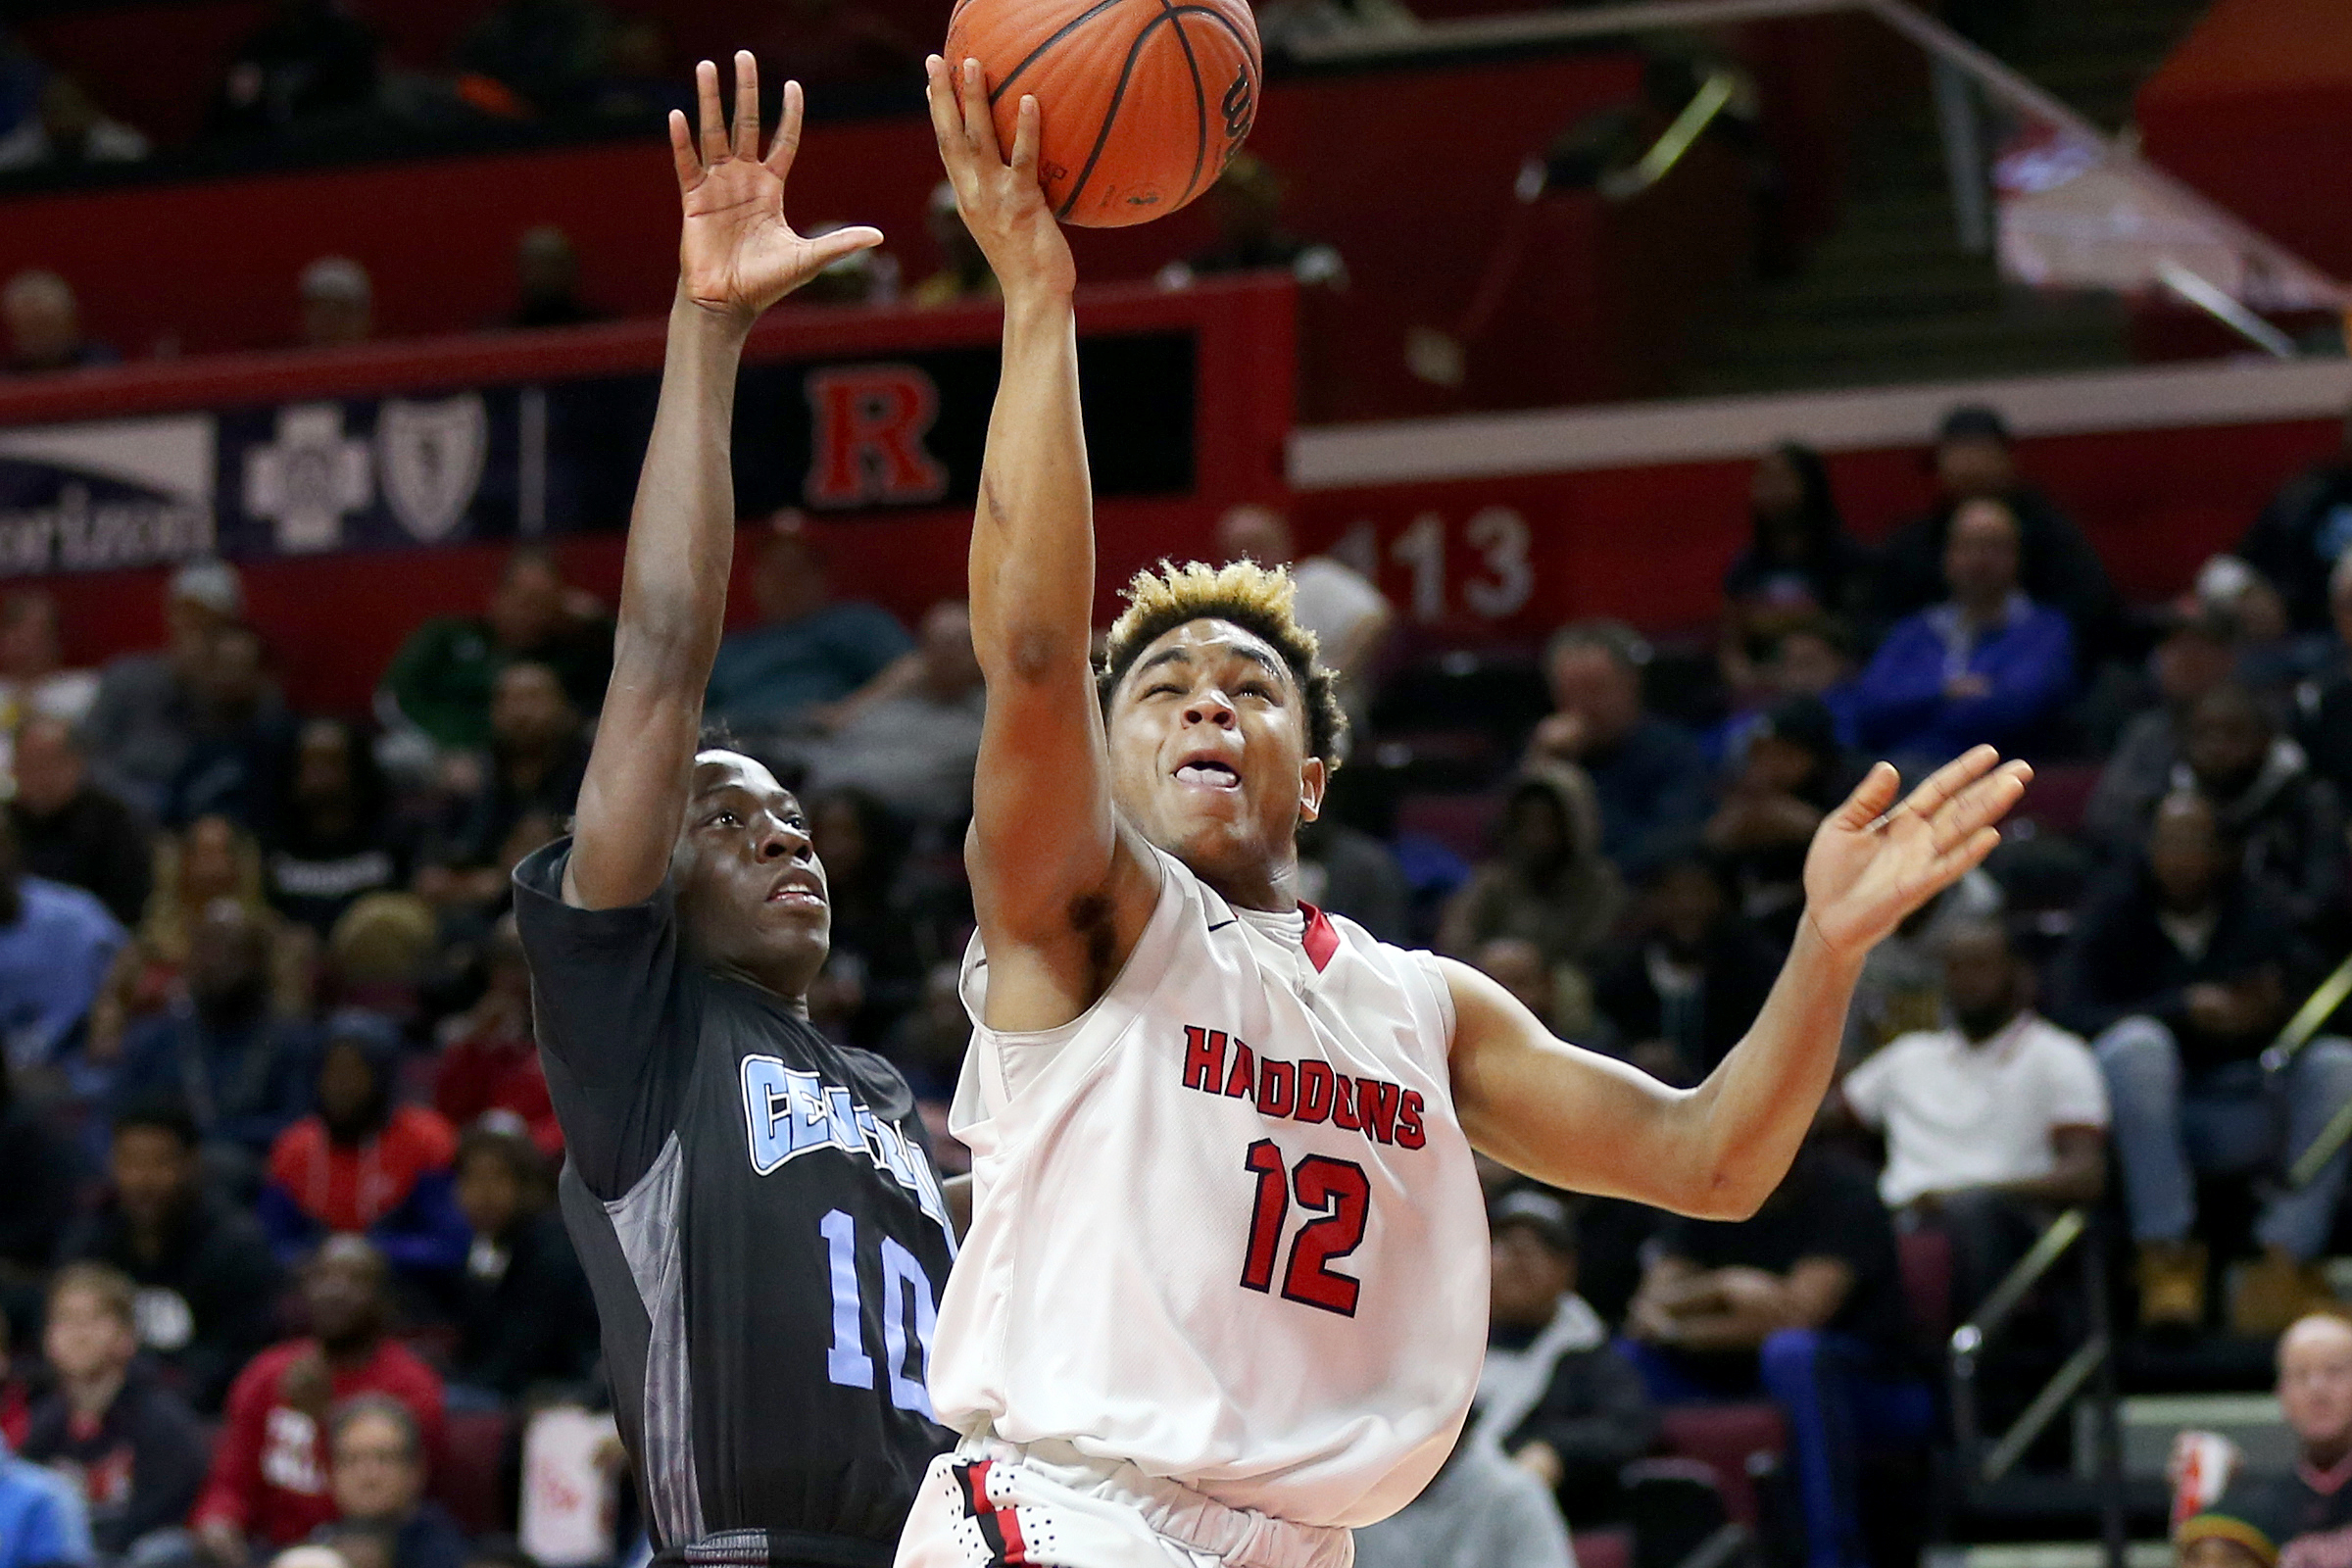 Haddonfield´s Lewis Evans (12) puts the ball up past Newark Central´s Joel Uzoka-Simmons (10) during the Group 2 state championship game.